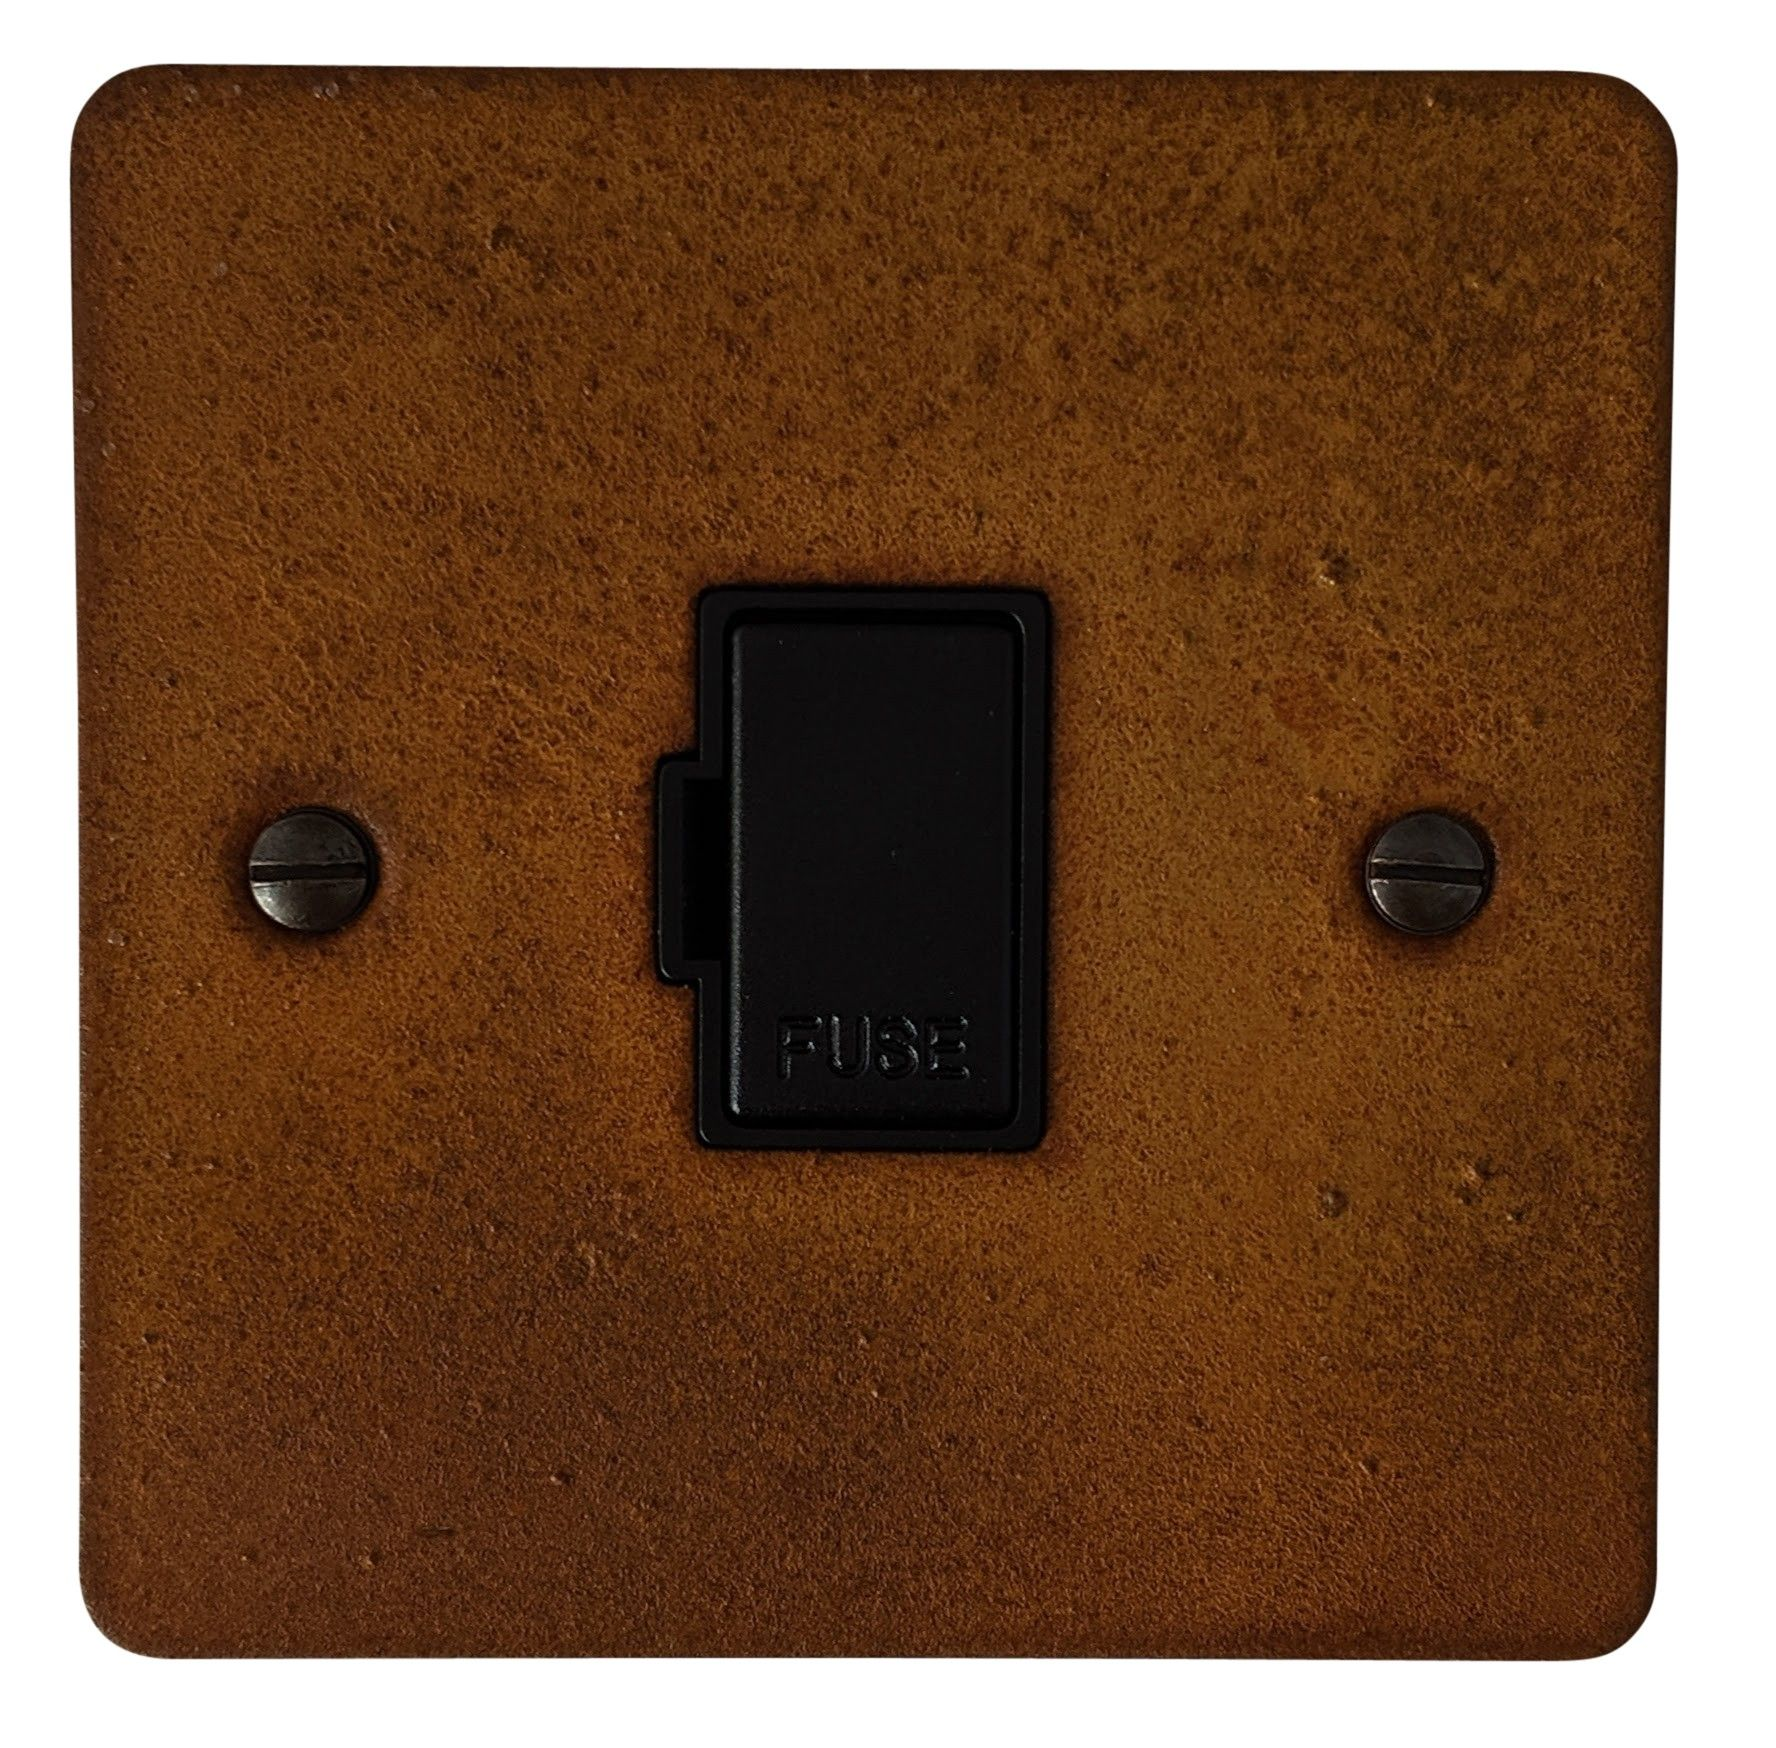 G&H FRT90B Flat Plate Rust 1 Gang Fused Spur 13A Unswitched